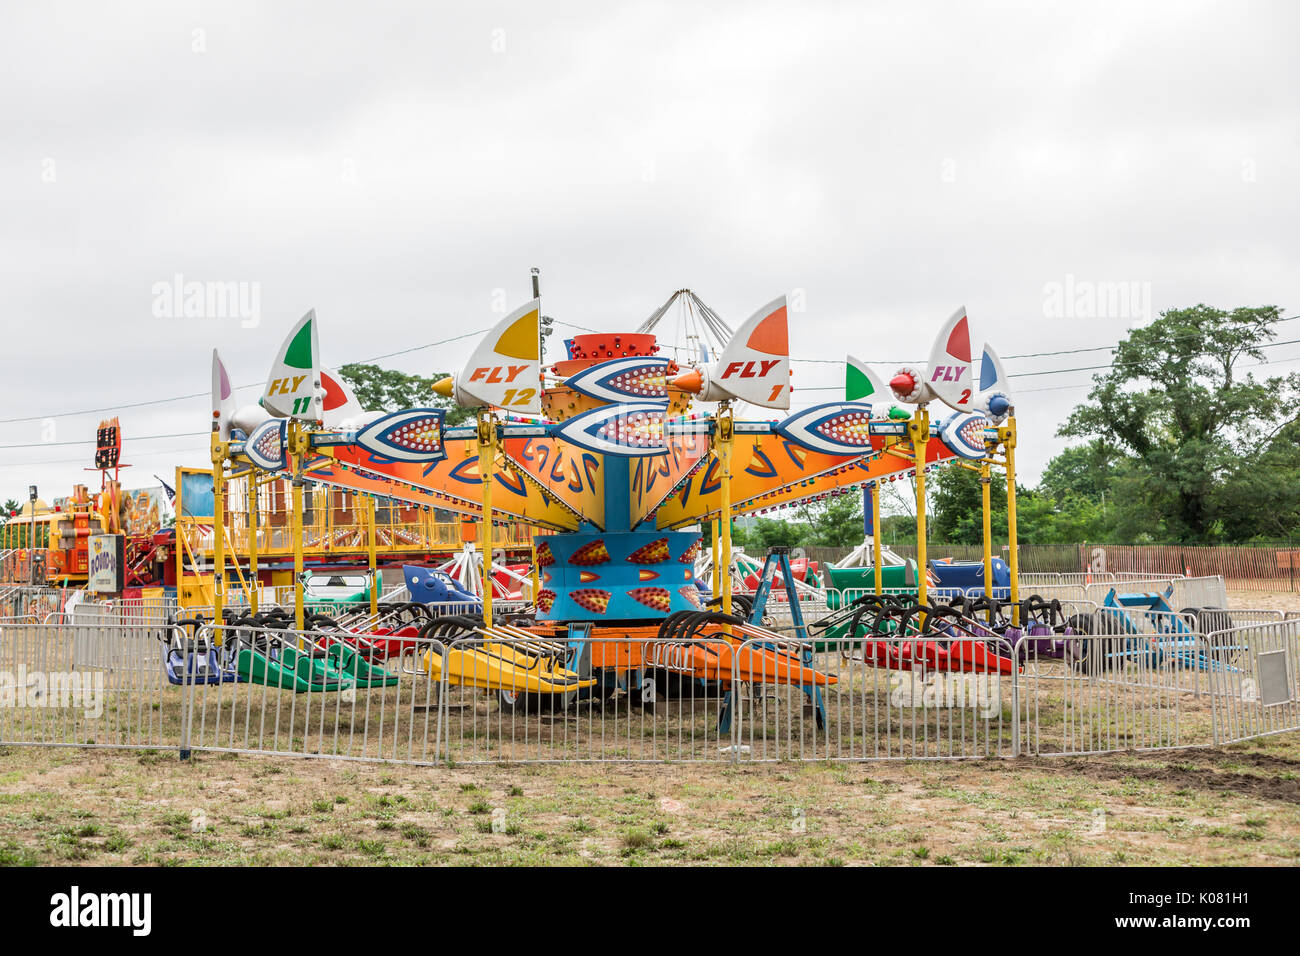 carnival rides at Haven's Beach, sag harbor, ny - Stock Image